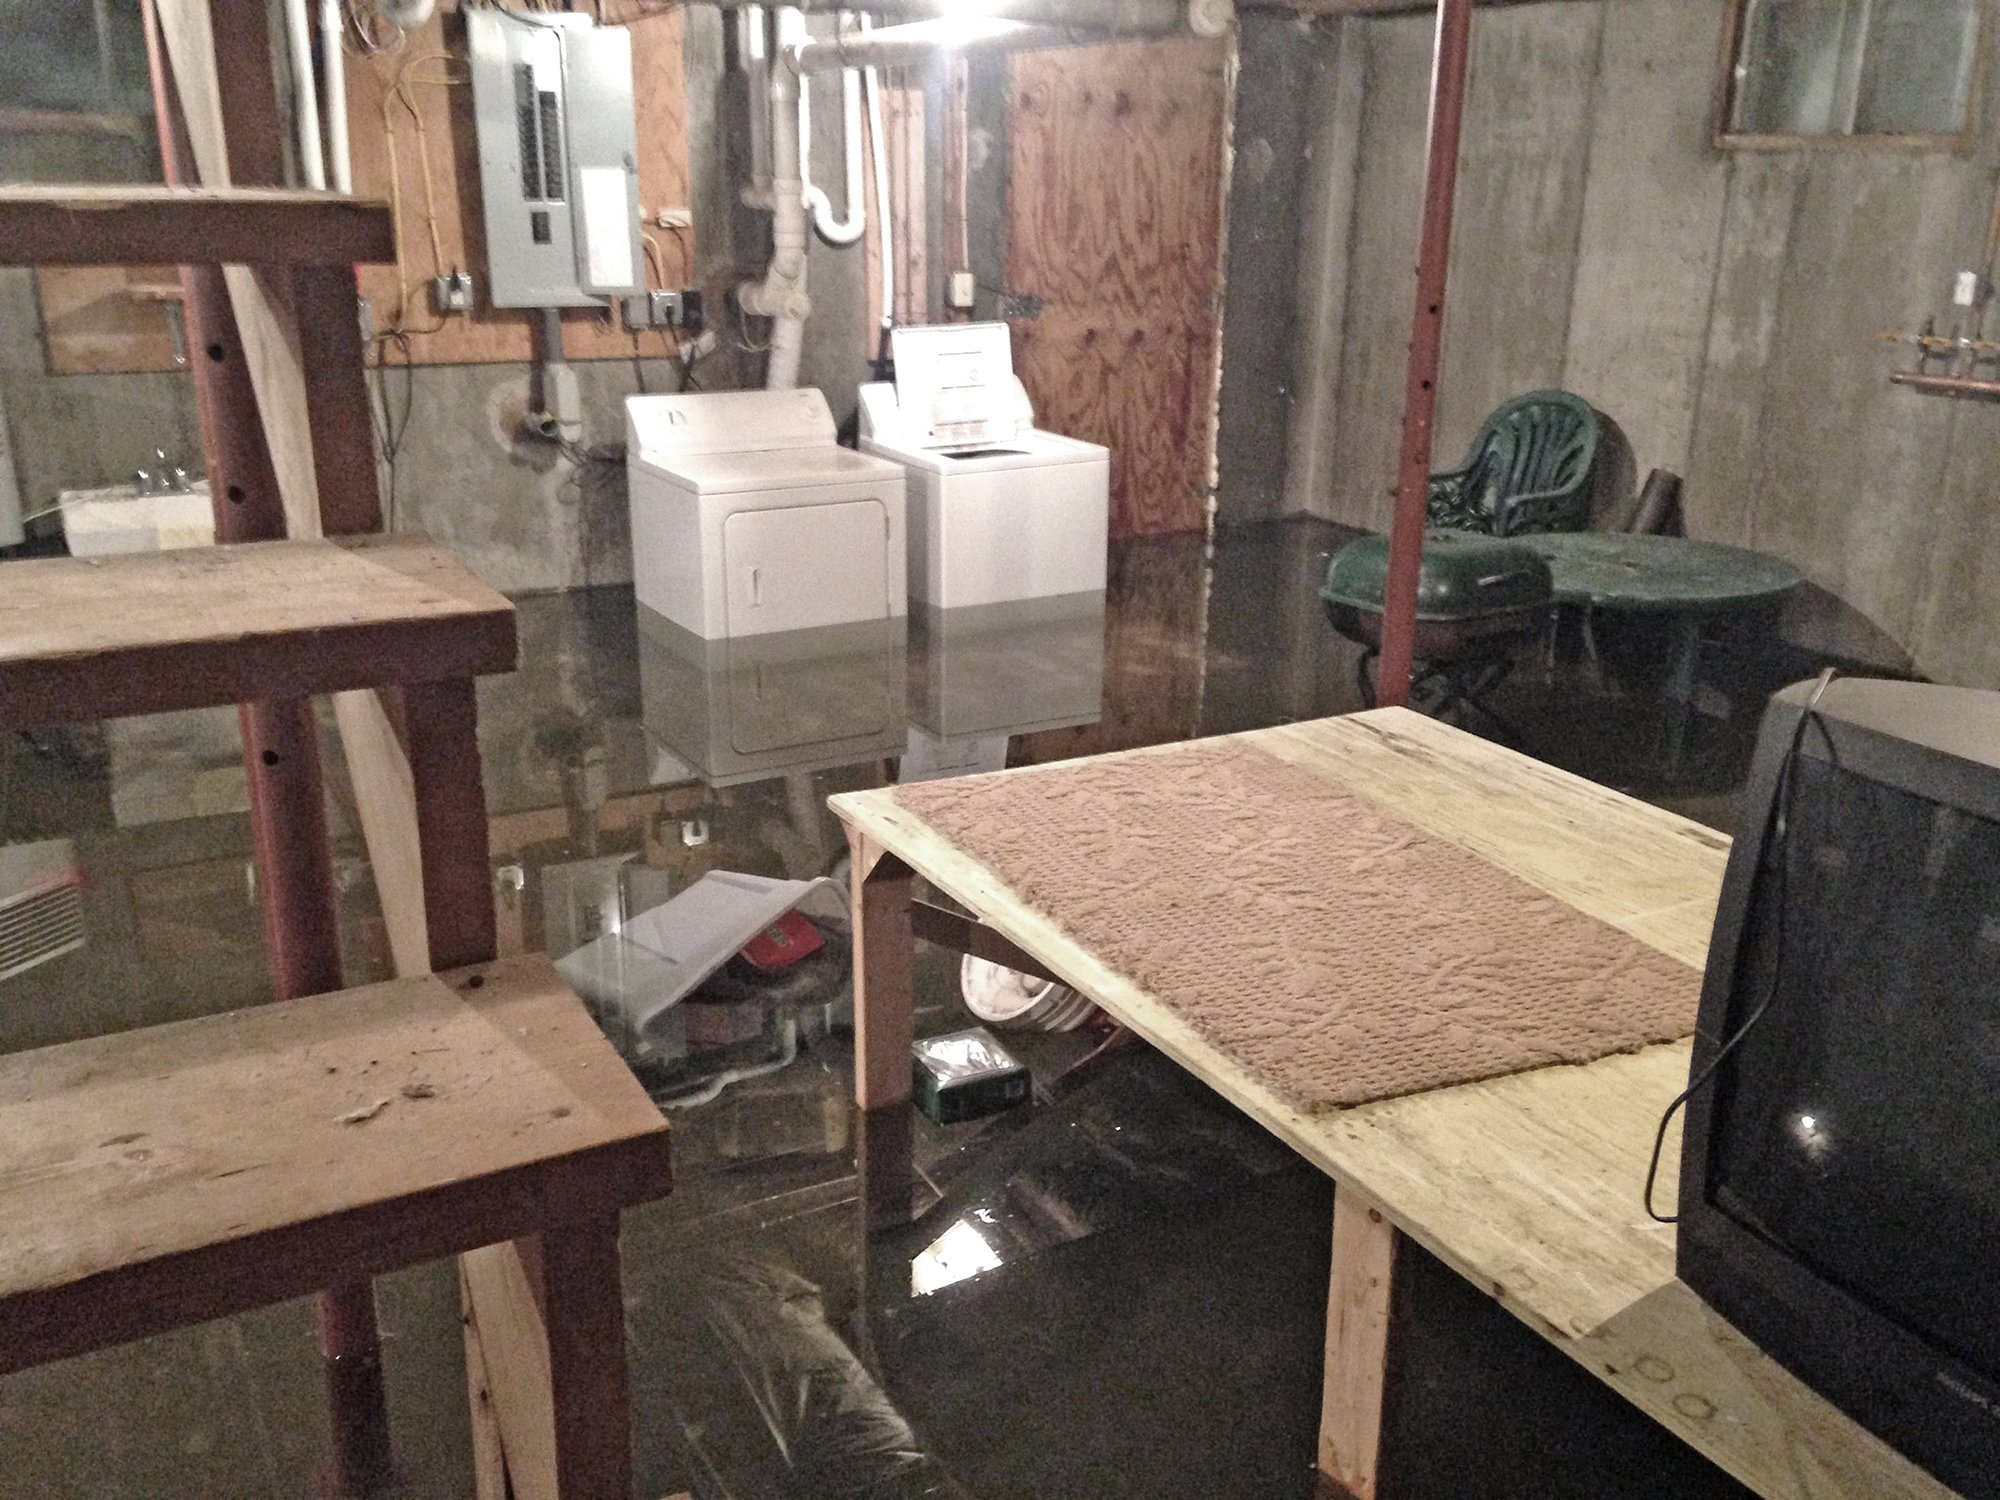 Water Damage Restoration Services in VT & Northern NH